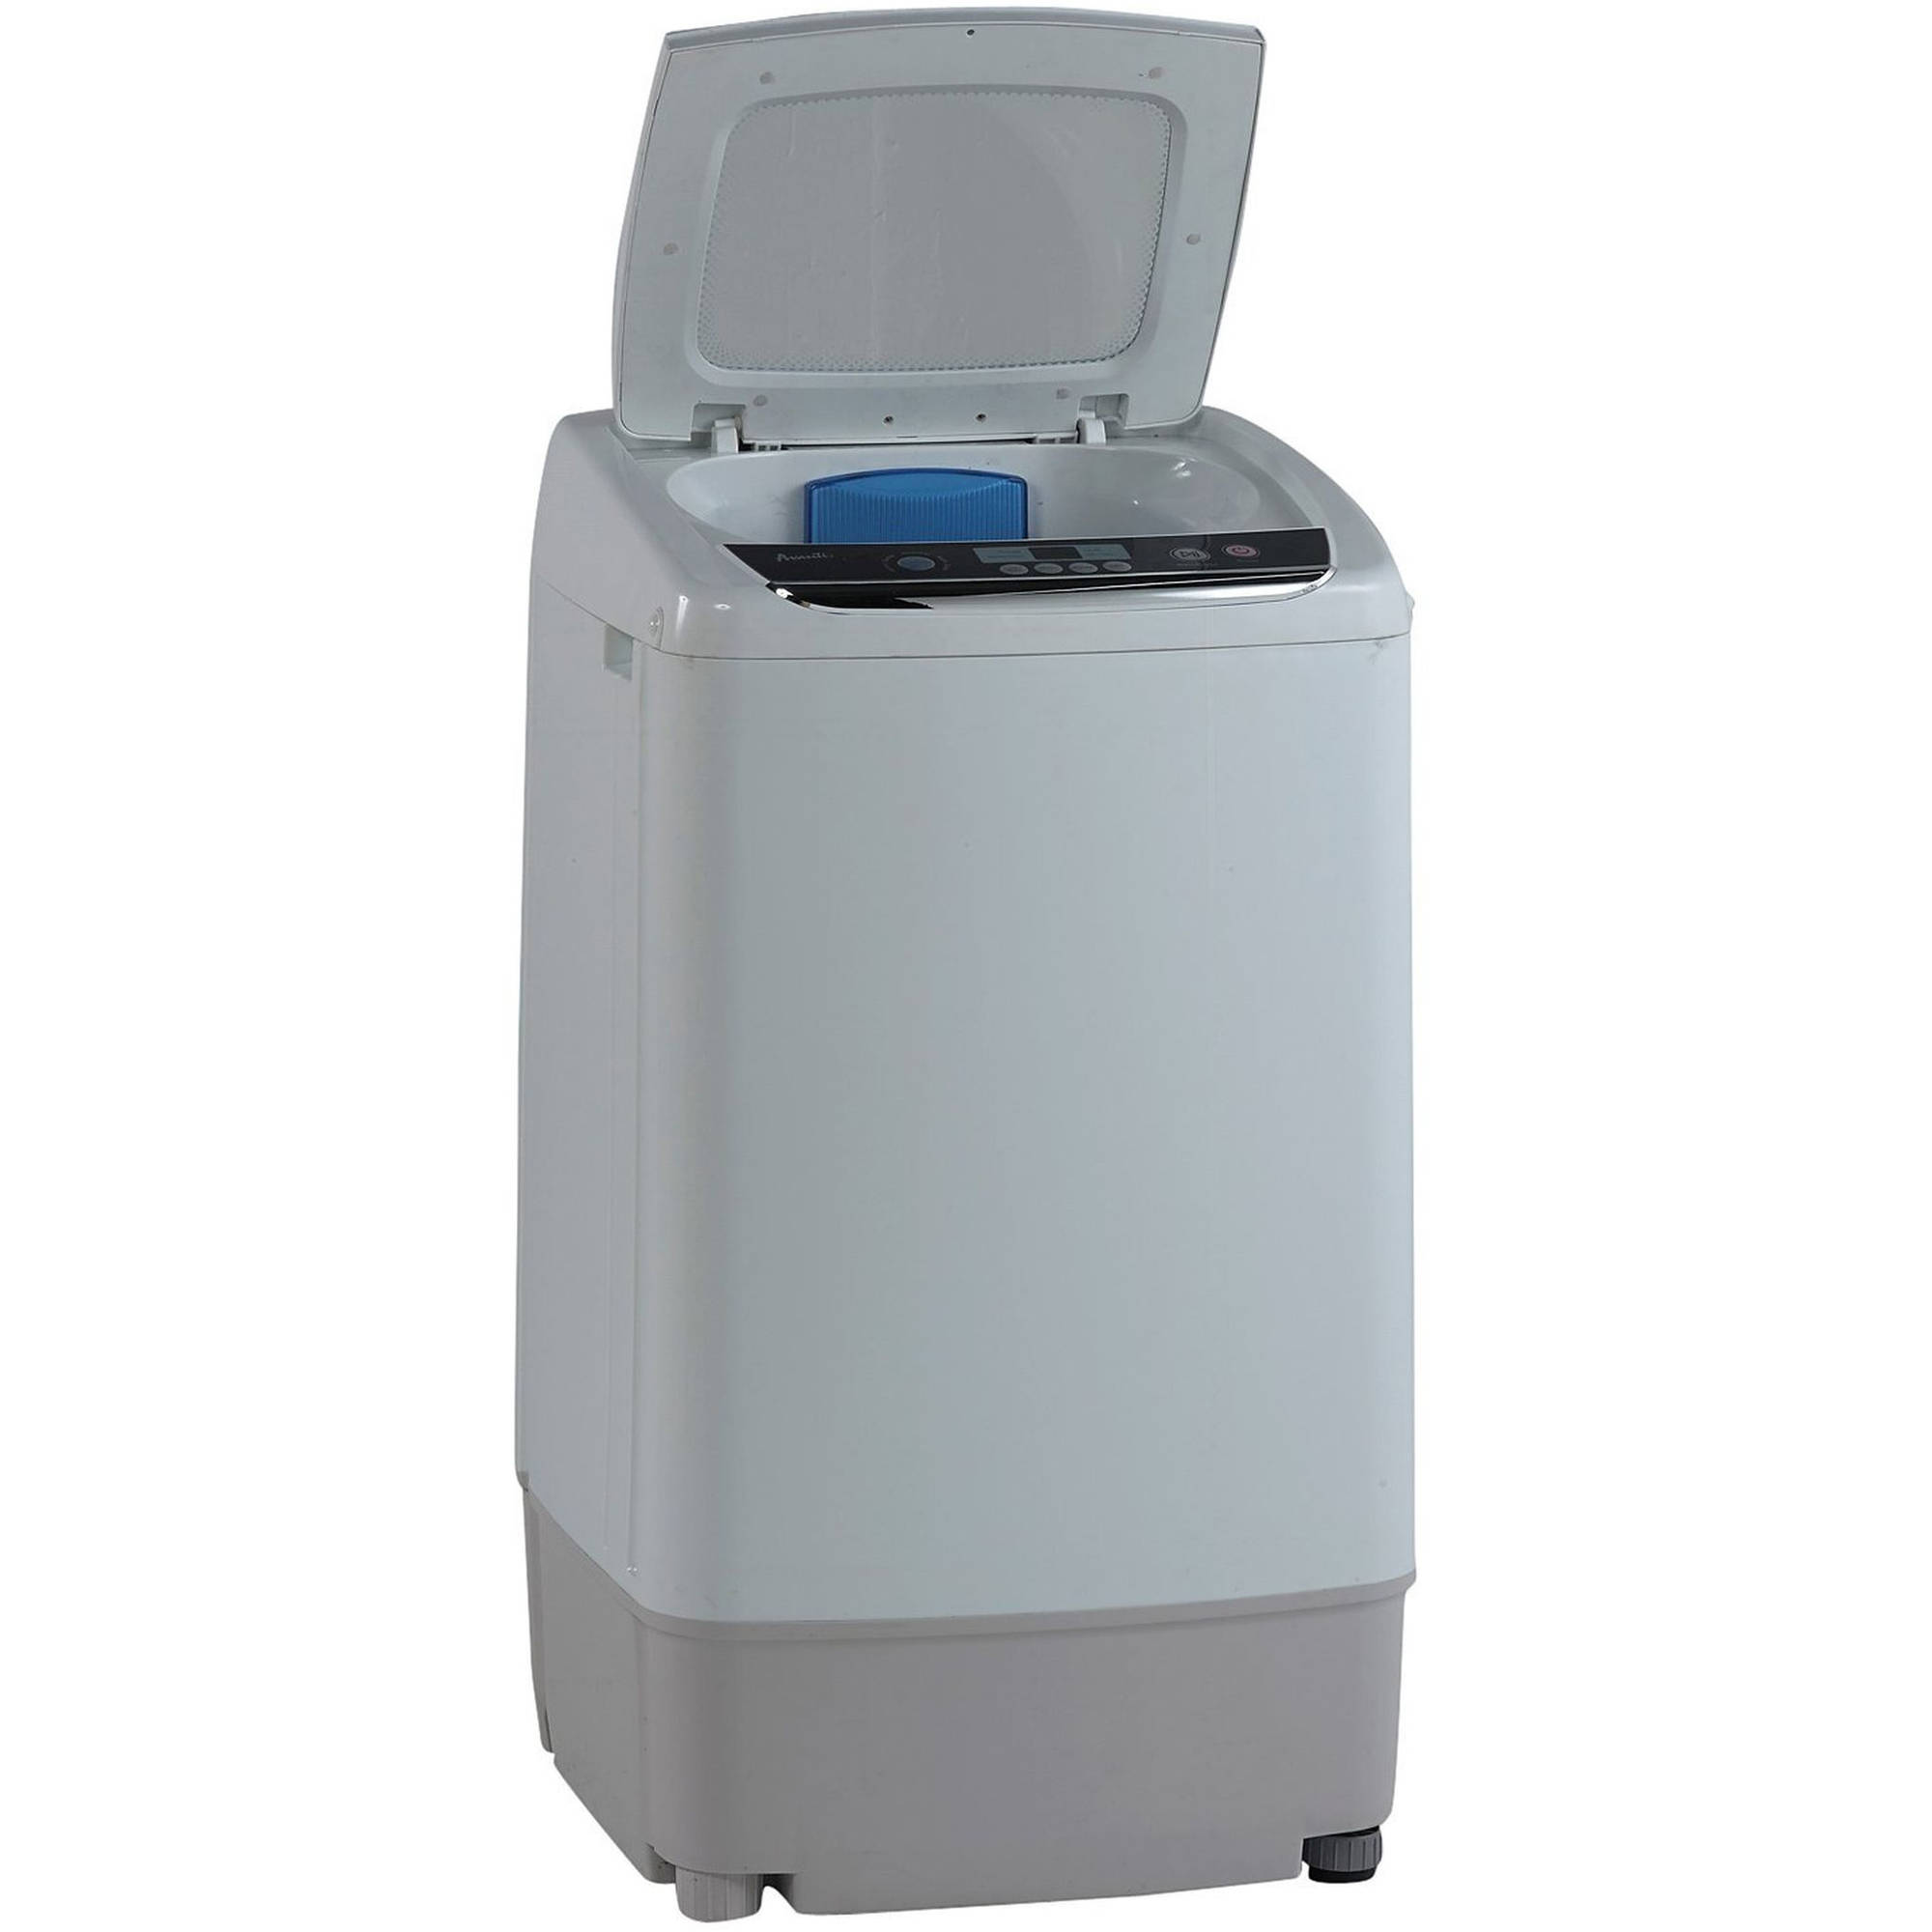 Portable Washer And Dryer Combo For Apartments - Home Design Ideas